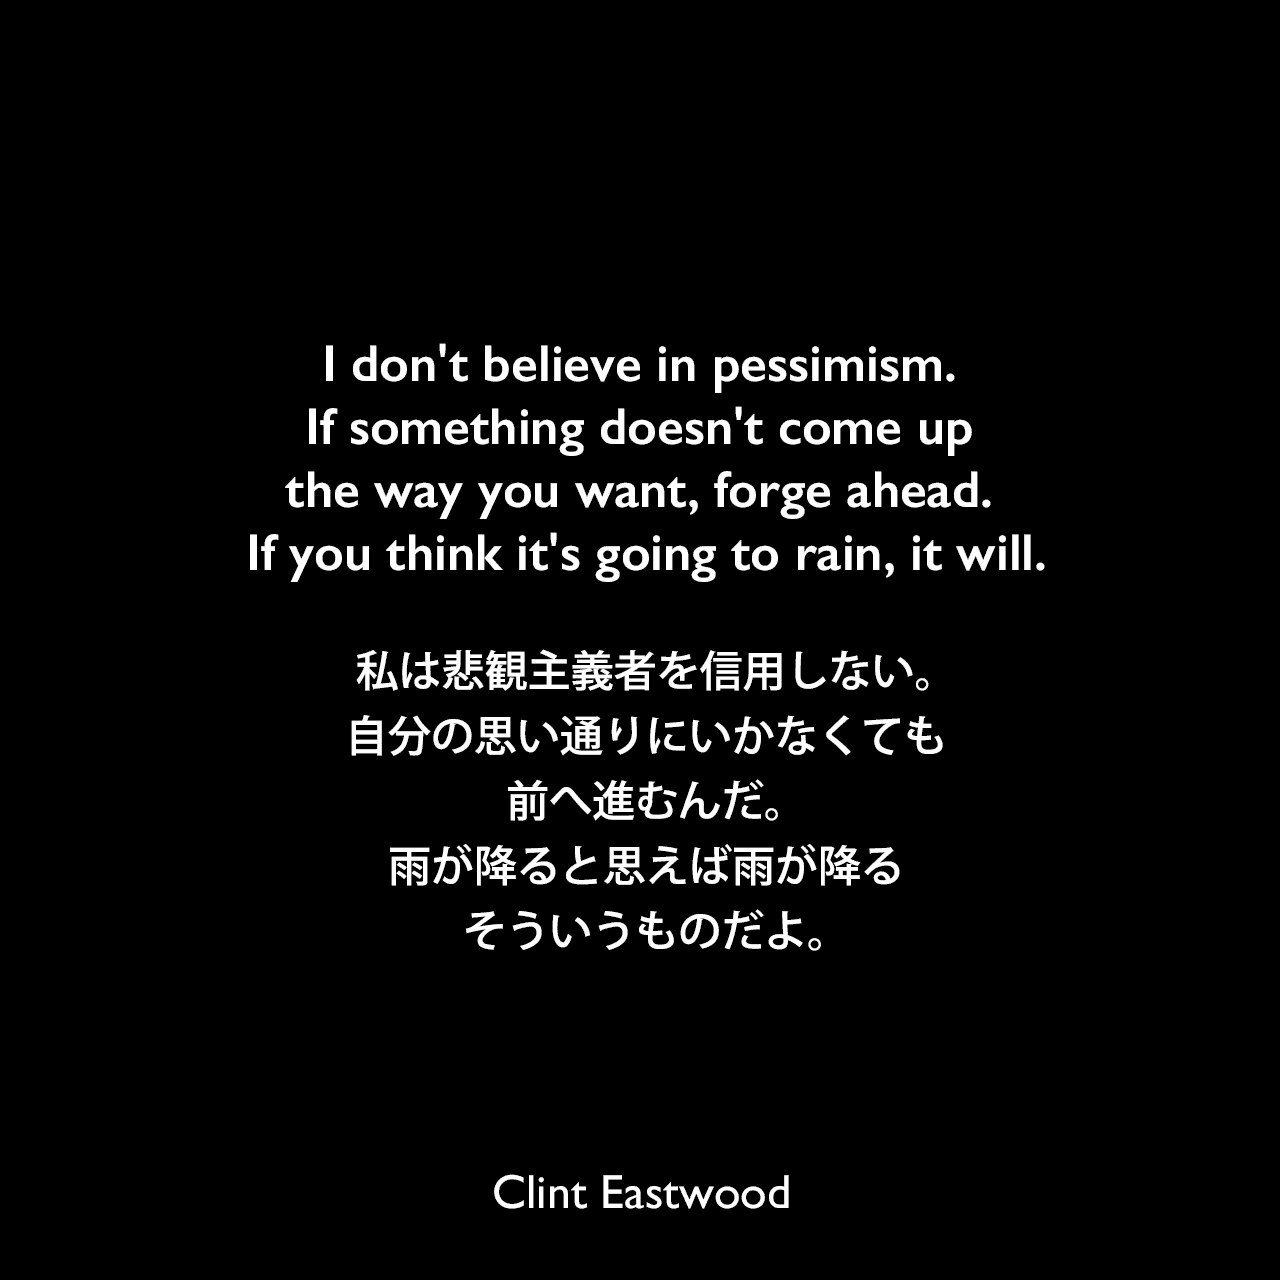 I don't believe in pessimism. If something doesn't come up the way you want, forge ahead. If you think it's going to rain, it will.私は悲観主義者を信用しない。自分の思い通りにいかなくても前へ進むんだ。雨が降ると思えば雨が降る、そういうものだよ。Clint Eastwood